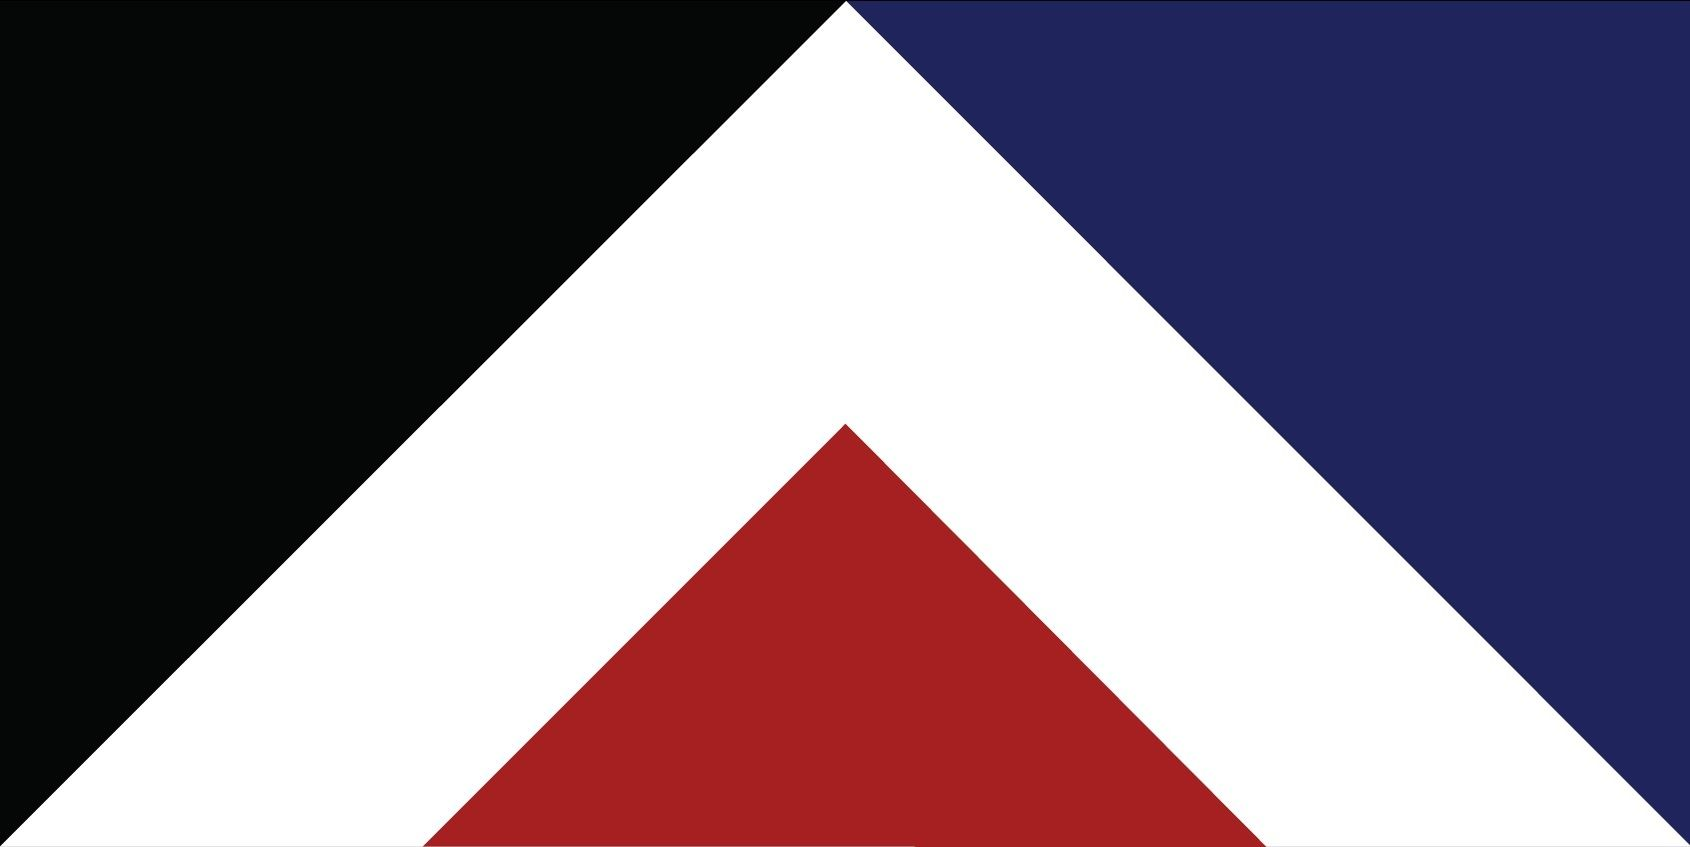 new zealand could be getting a new flag and this - Flag Design Ideas